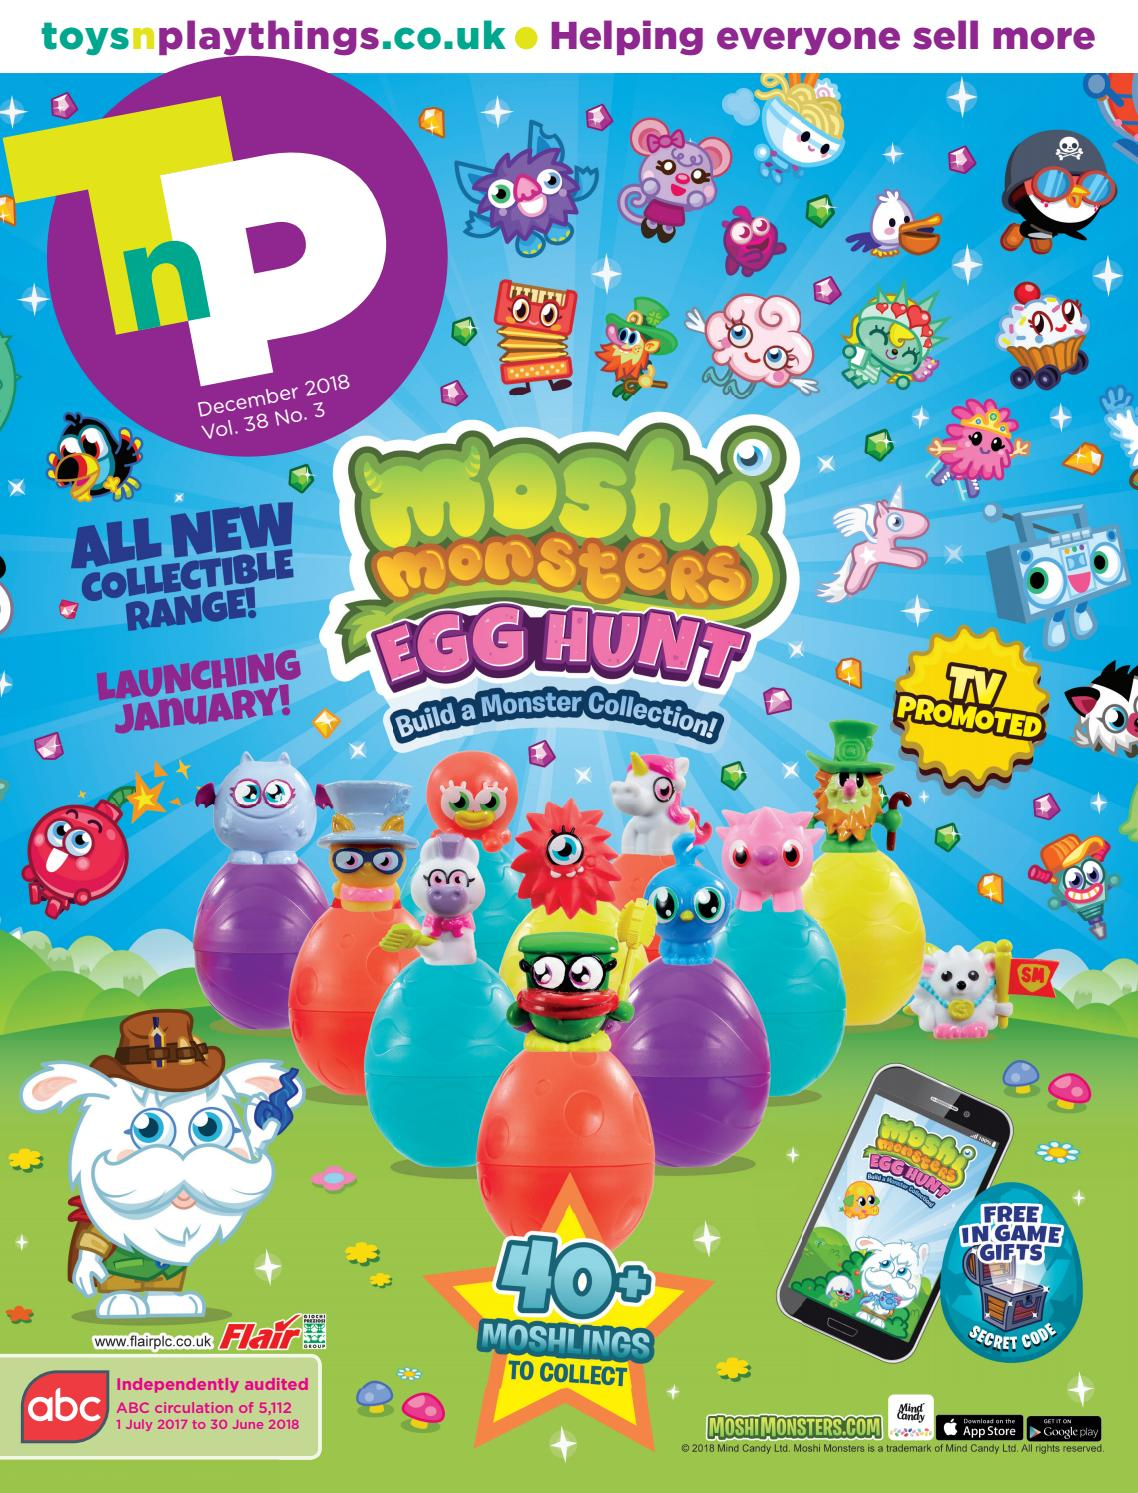 Toys n playthings december 2018 by lema publishing issuu